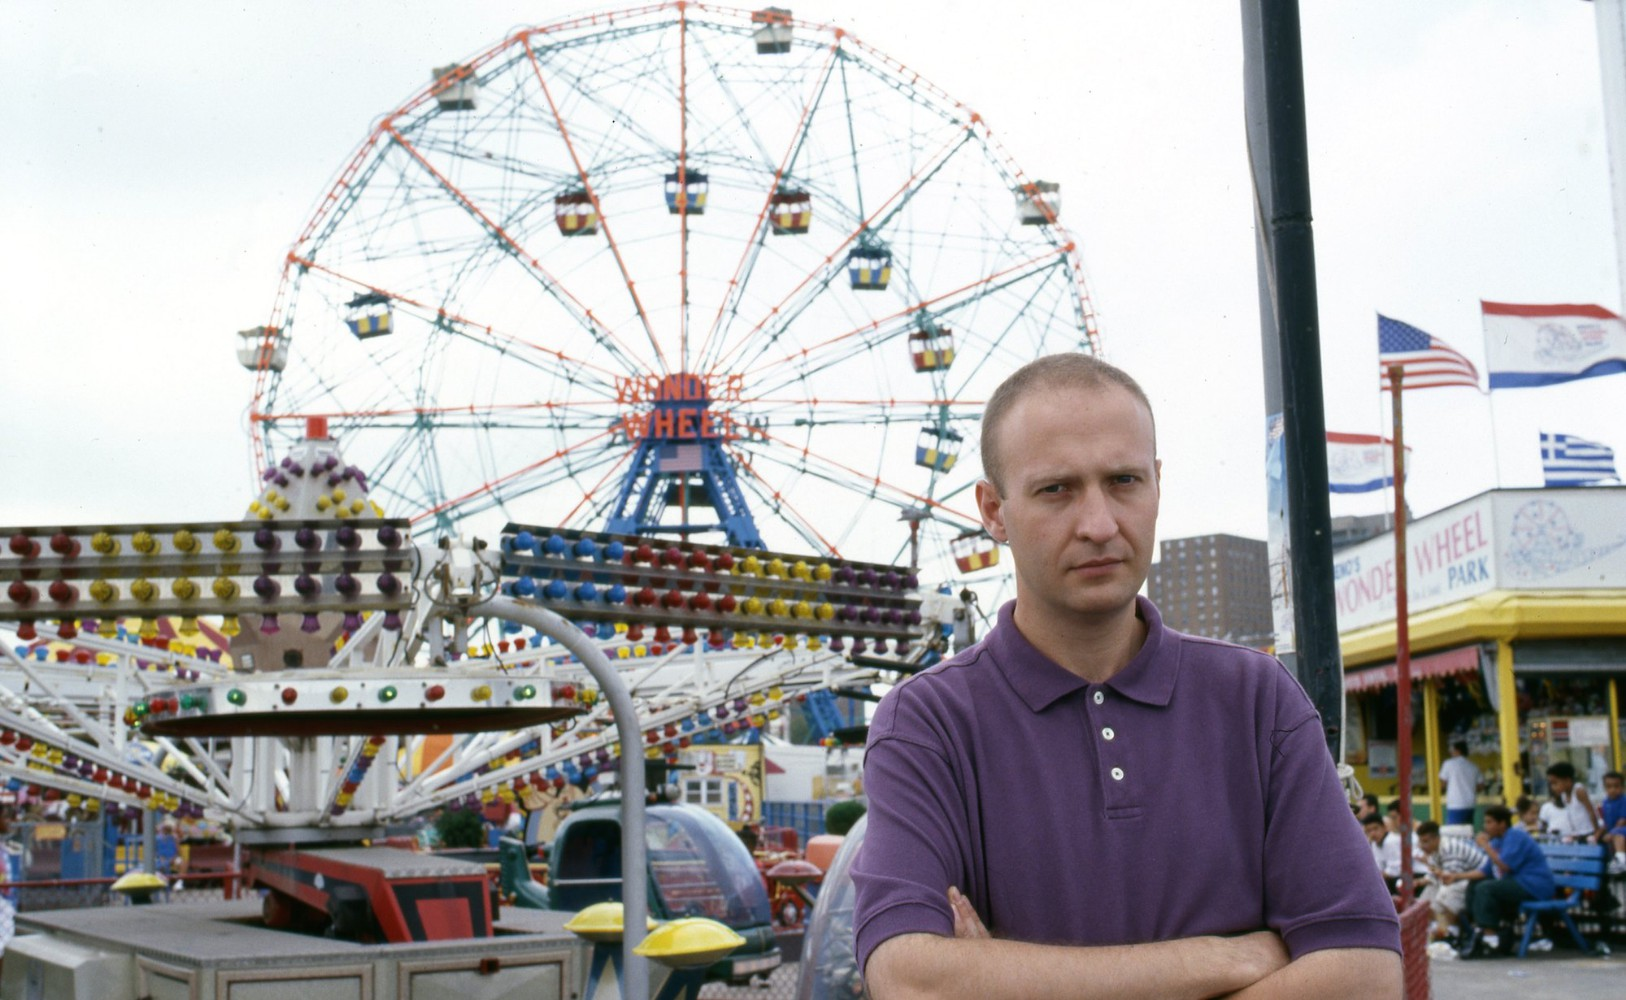 Bob Mould at Coney Island in the mid 1990s